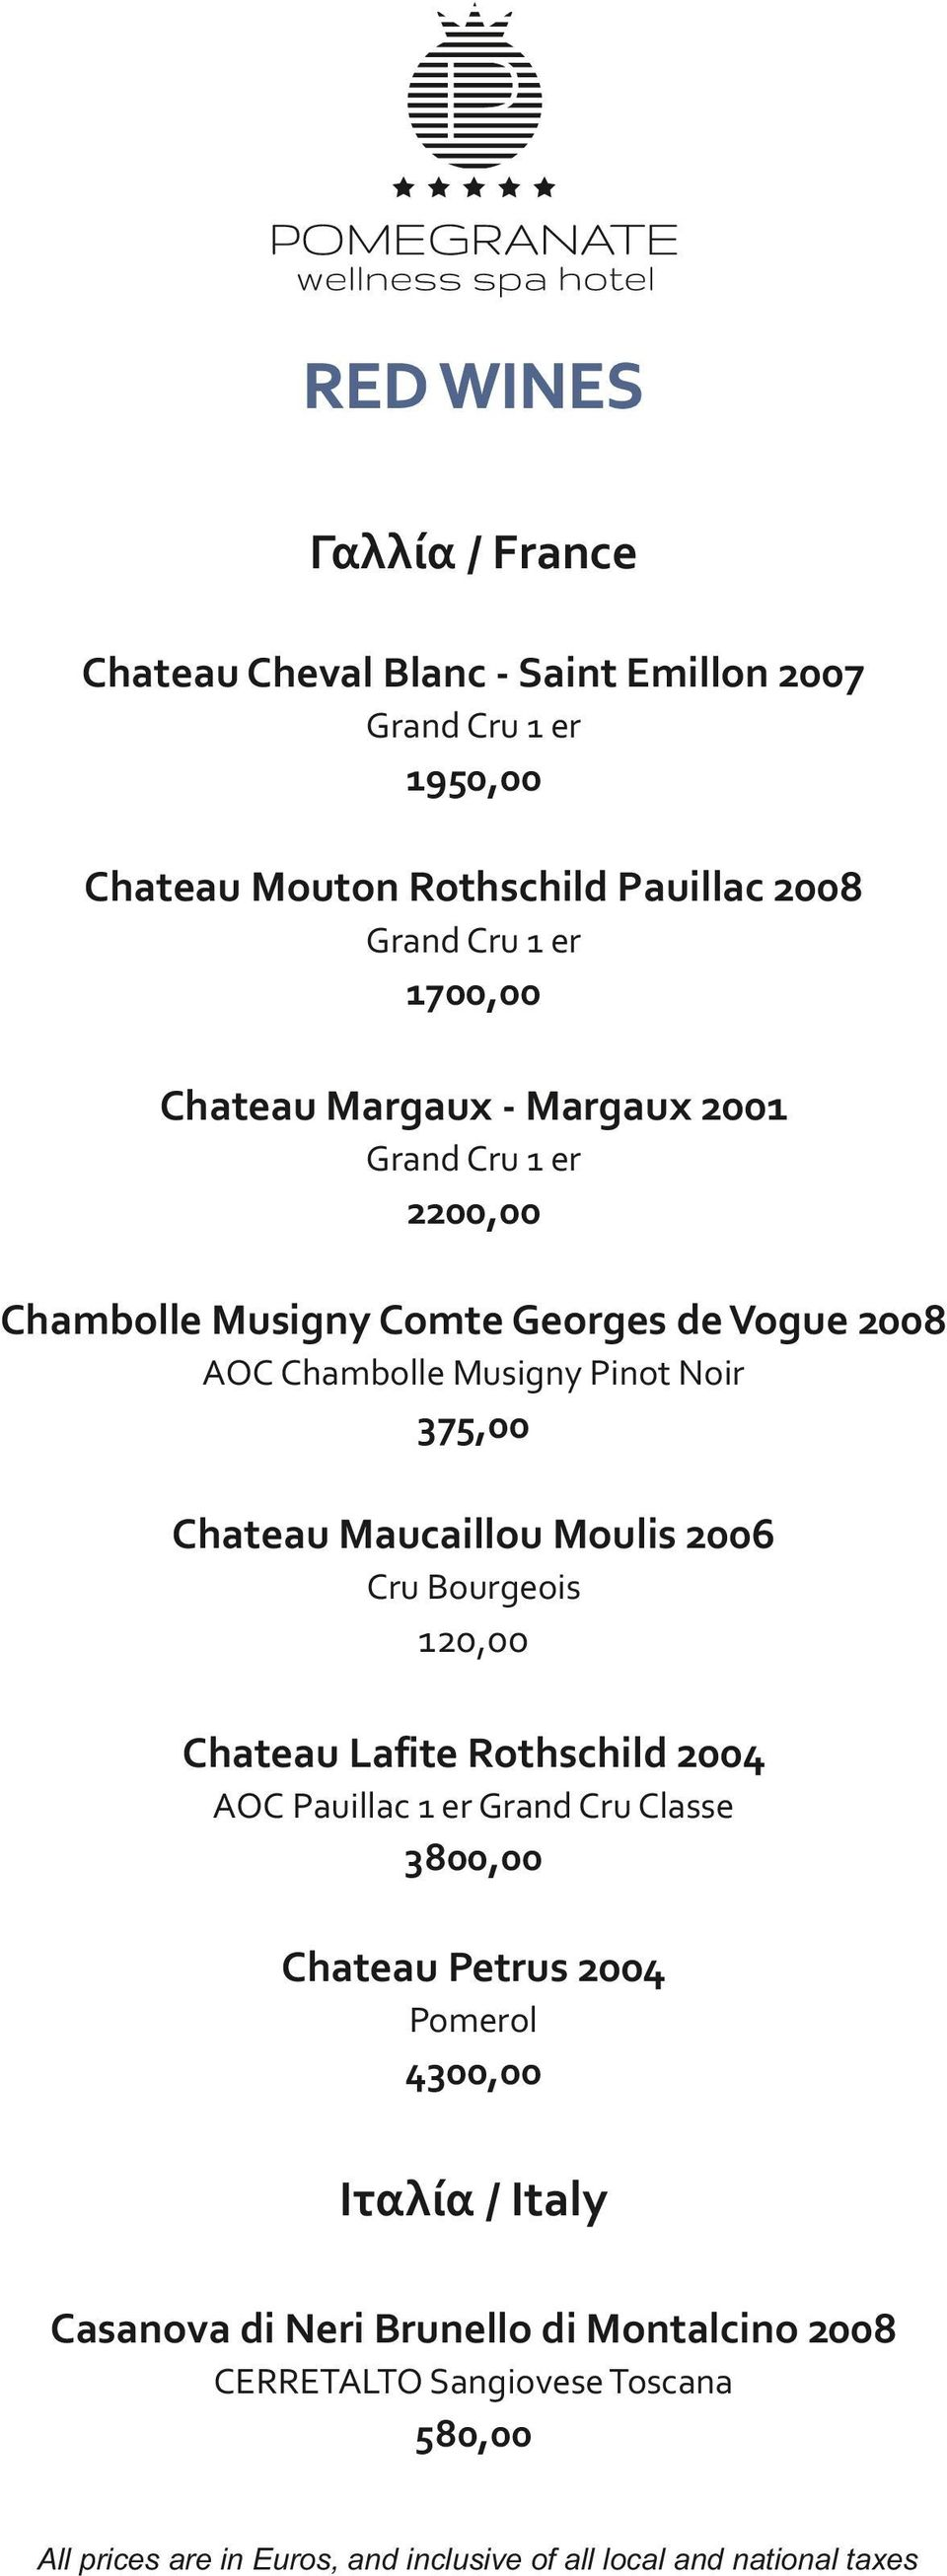 Musigny Pinot Noir 375,00 Chateau Maucaillou Moulis 2006 Cru Bourgeois 120,00 Chateau Lafite Rothschild 2004 AOC Pauillac 1 er Grand Cru